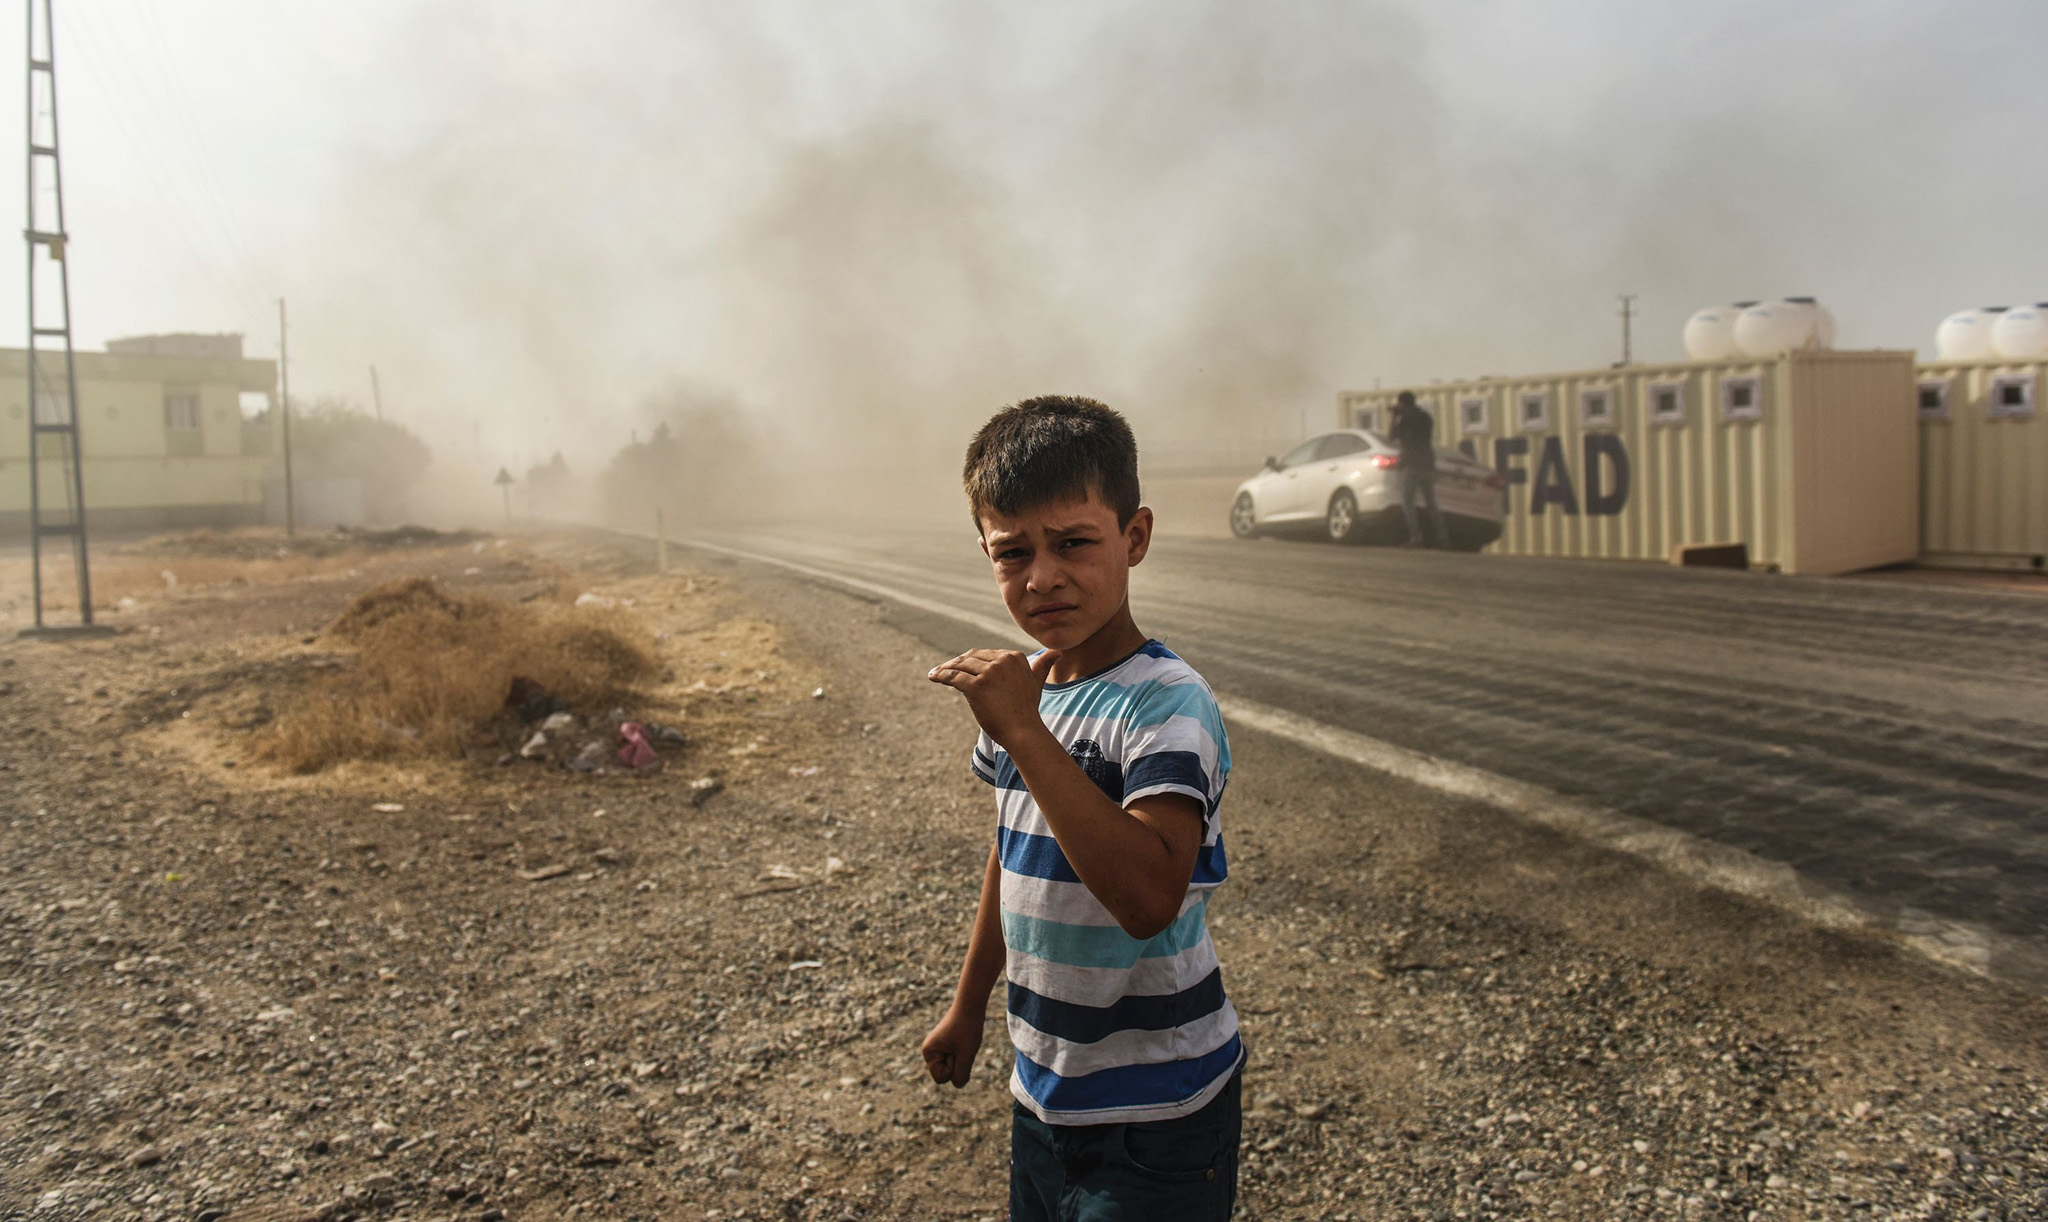 This picture taken around 5 kilometres west from the Turkish Syrian border city of Karkamis in the southern region of Gaziantep, on August 25, 2016 shows a boy looking on as Turkish Army tanks drive to the Syrian Turkish border town of Jarabulus. Turkey's army backed by international coalition air strikes launched an operation involving fighter jets and elite ground troops to drive Islamic State jihadists out of a key Syrian border town. The air and ground operation, the most ambitious launched by Turkey in the Syria conflict, is aimed at clearing jihadists from the town of Jarabulus, which lies directly opposite the Turkish town of Karkamis. / AFP PHOTO / BULENT KILICBULENT KILIC/AFP/Getty Images